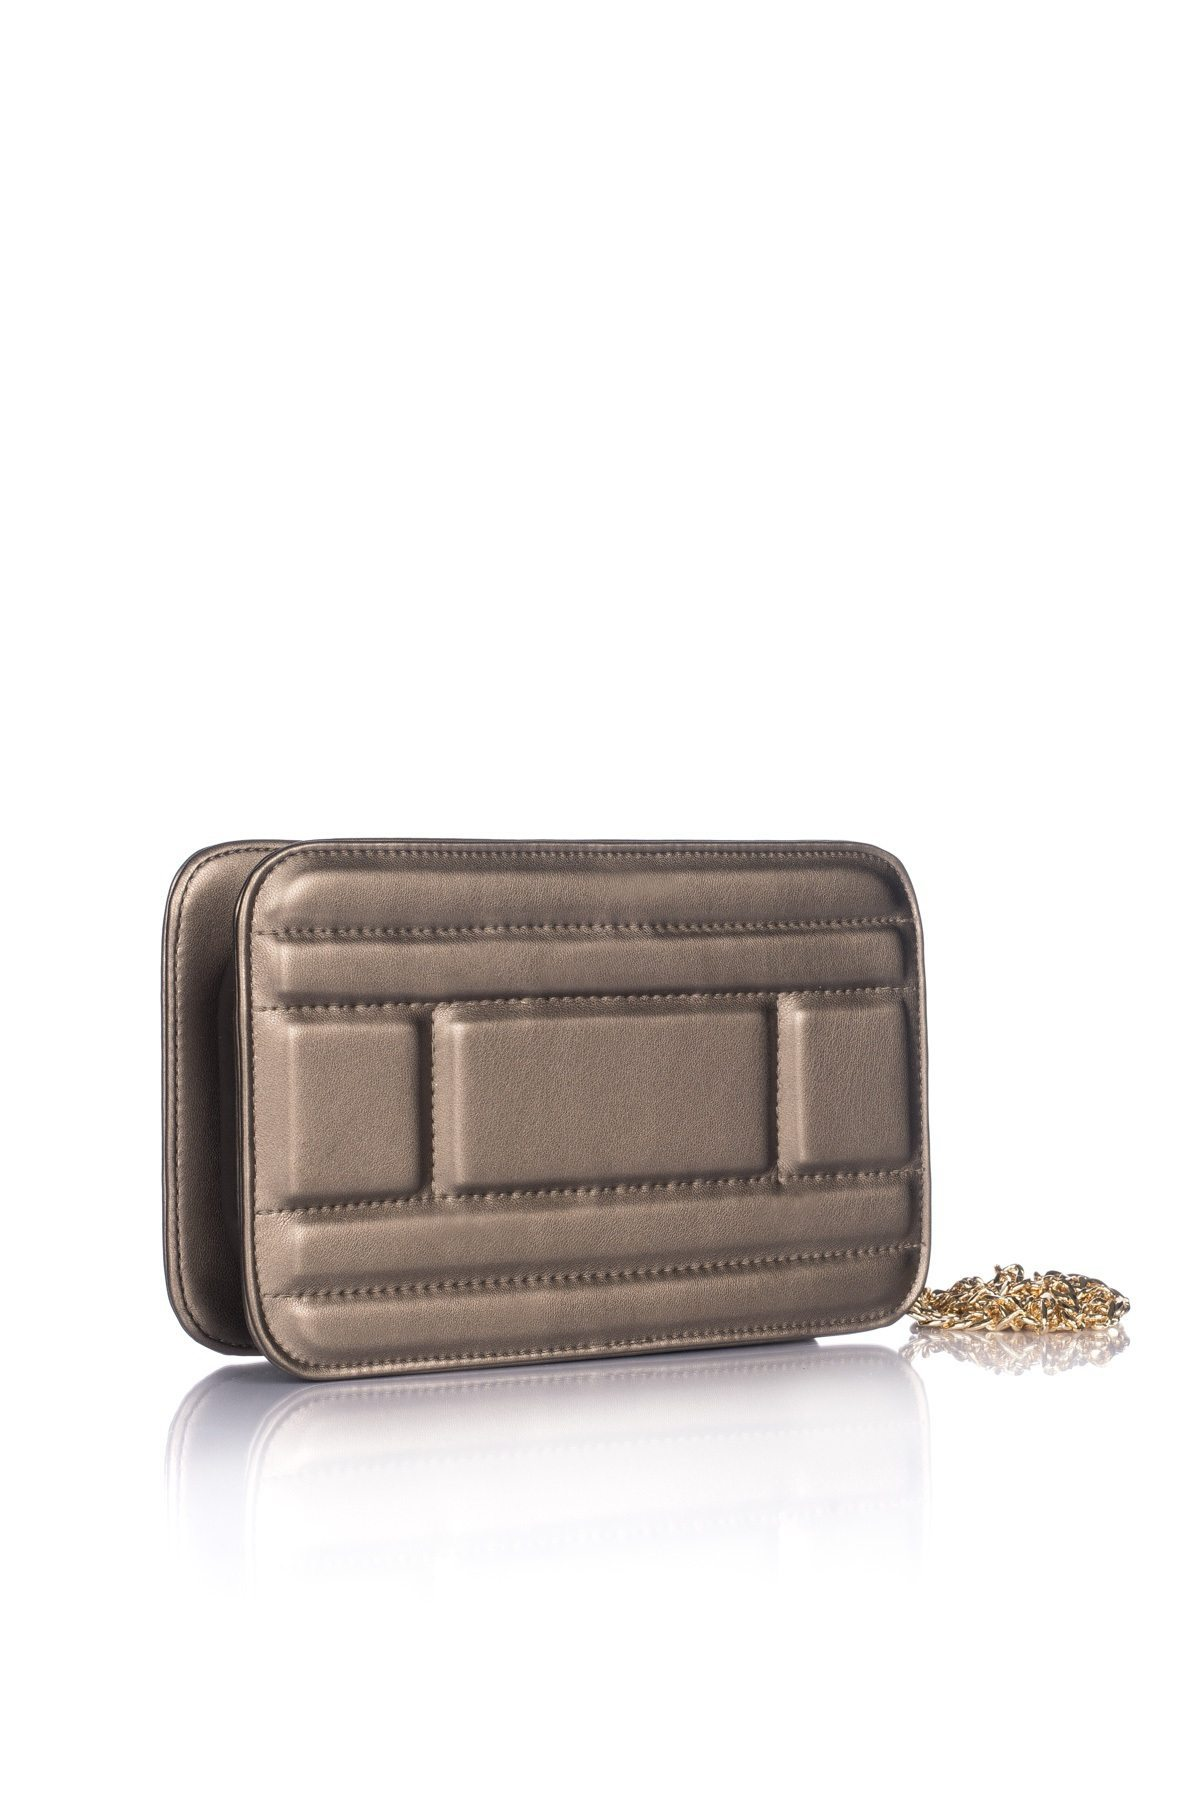 Elegant Clutch With Golden Chain Expl1217 Nissa Fashion Brown Front View Back